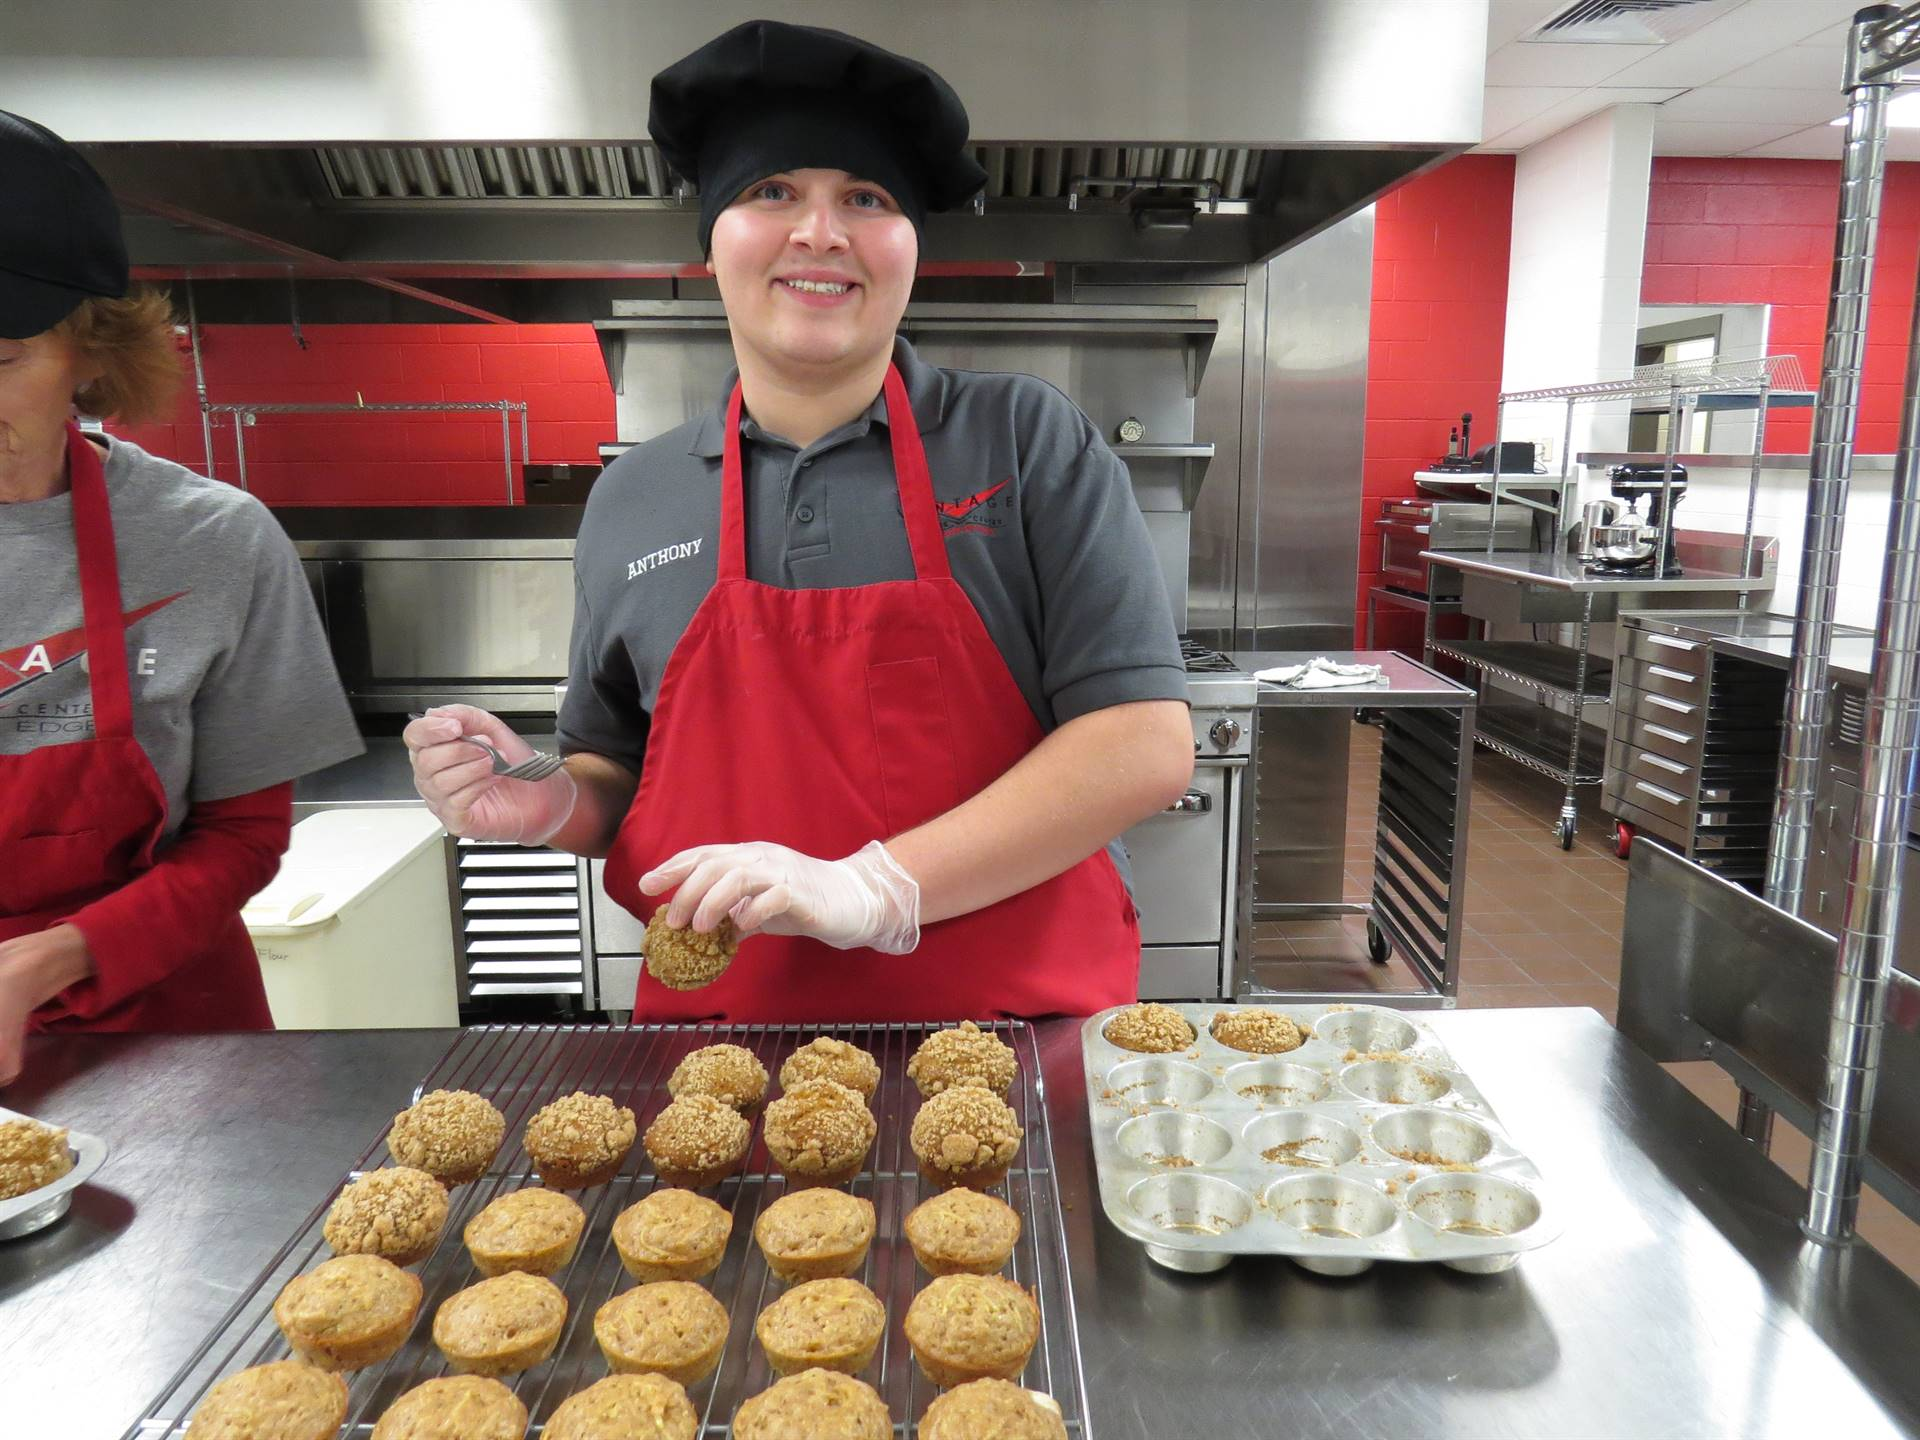 Culinary Arts student prepares muffins for a banquet.